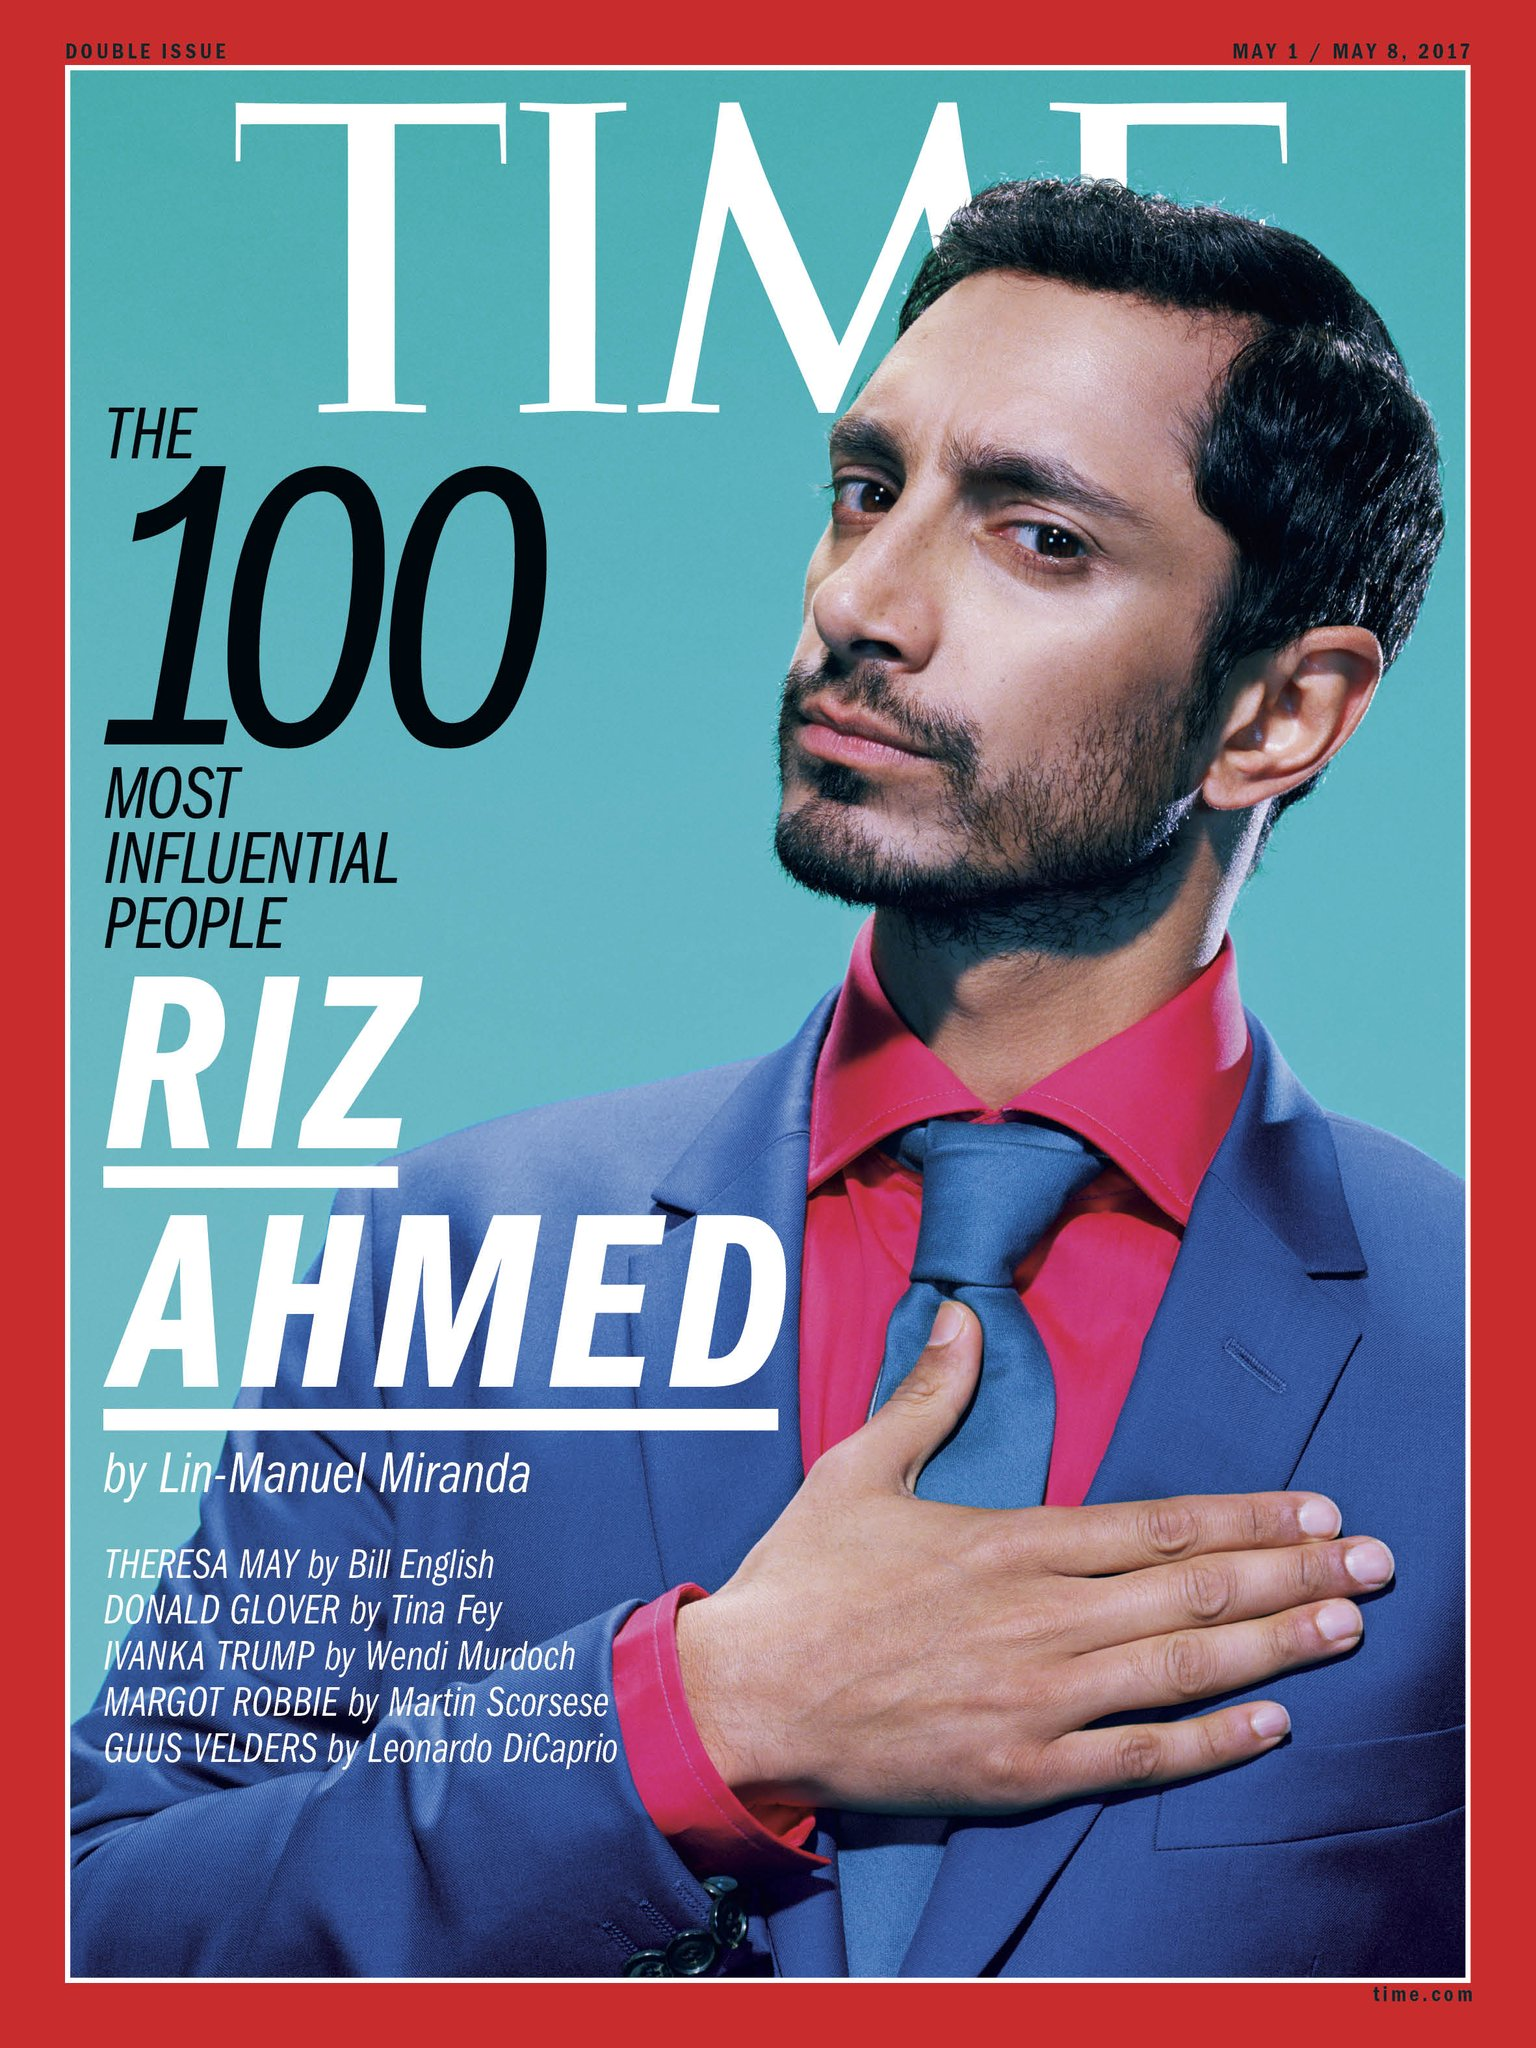 """.@Lin_Manuel on Riz Ahmed: """"To know him is to be inspired, engaged and ready to create alongside him"""" #TIME100 https://t.co/RwGqsF24qi https://t.co/BkWc14UBzP"""